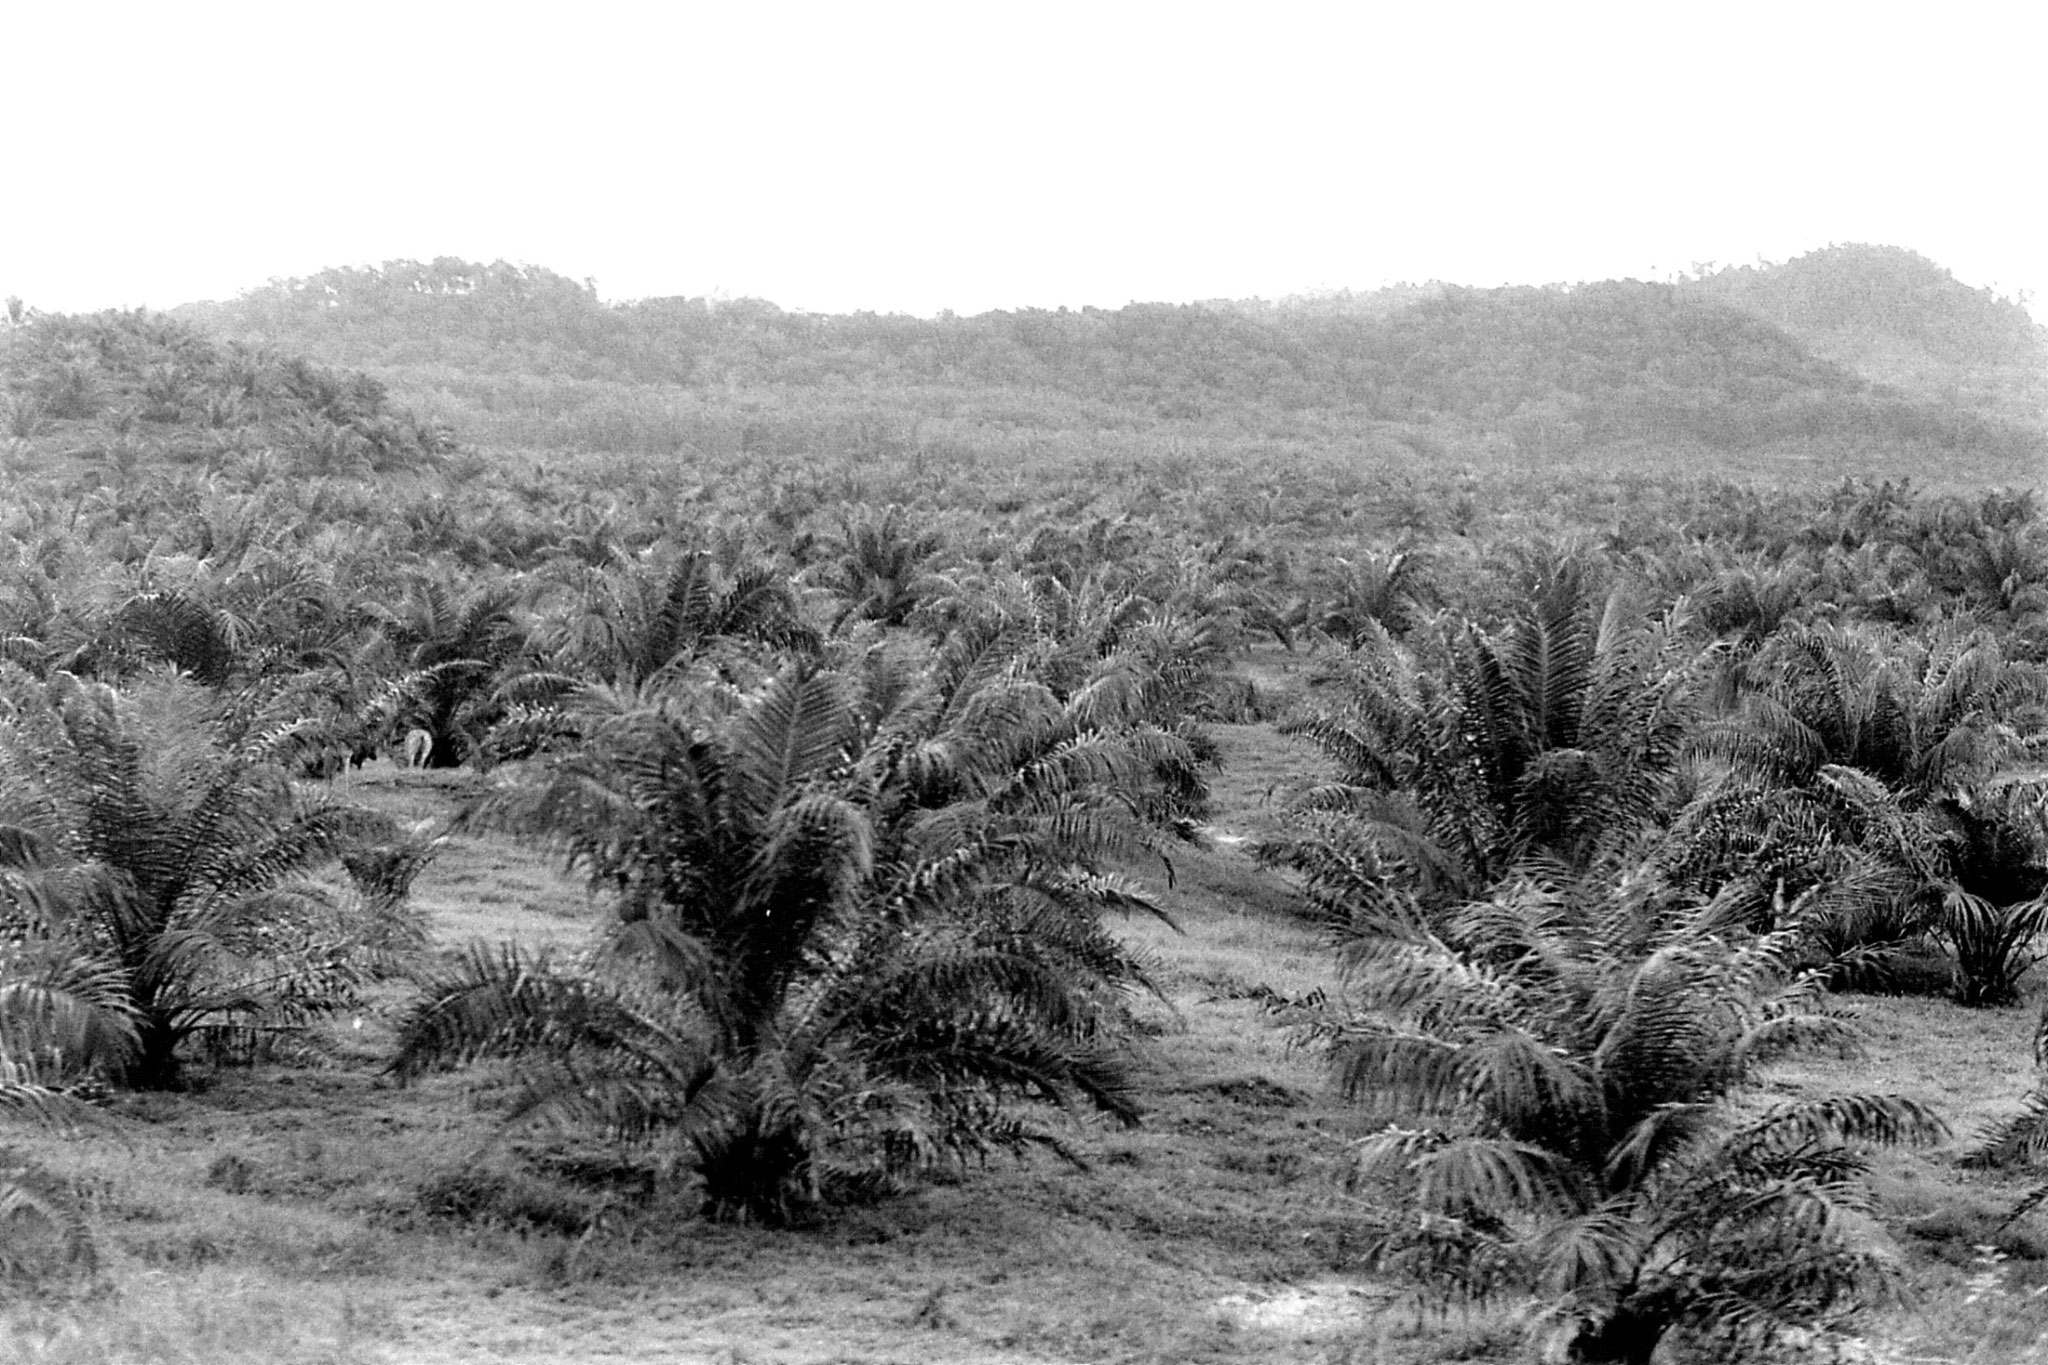 21/6/1990: 32: train to Jelantut, palm oil plantation after Kuala Kerai